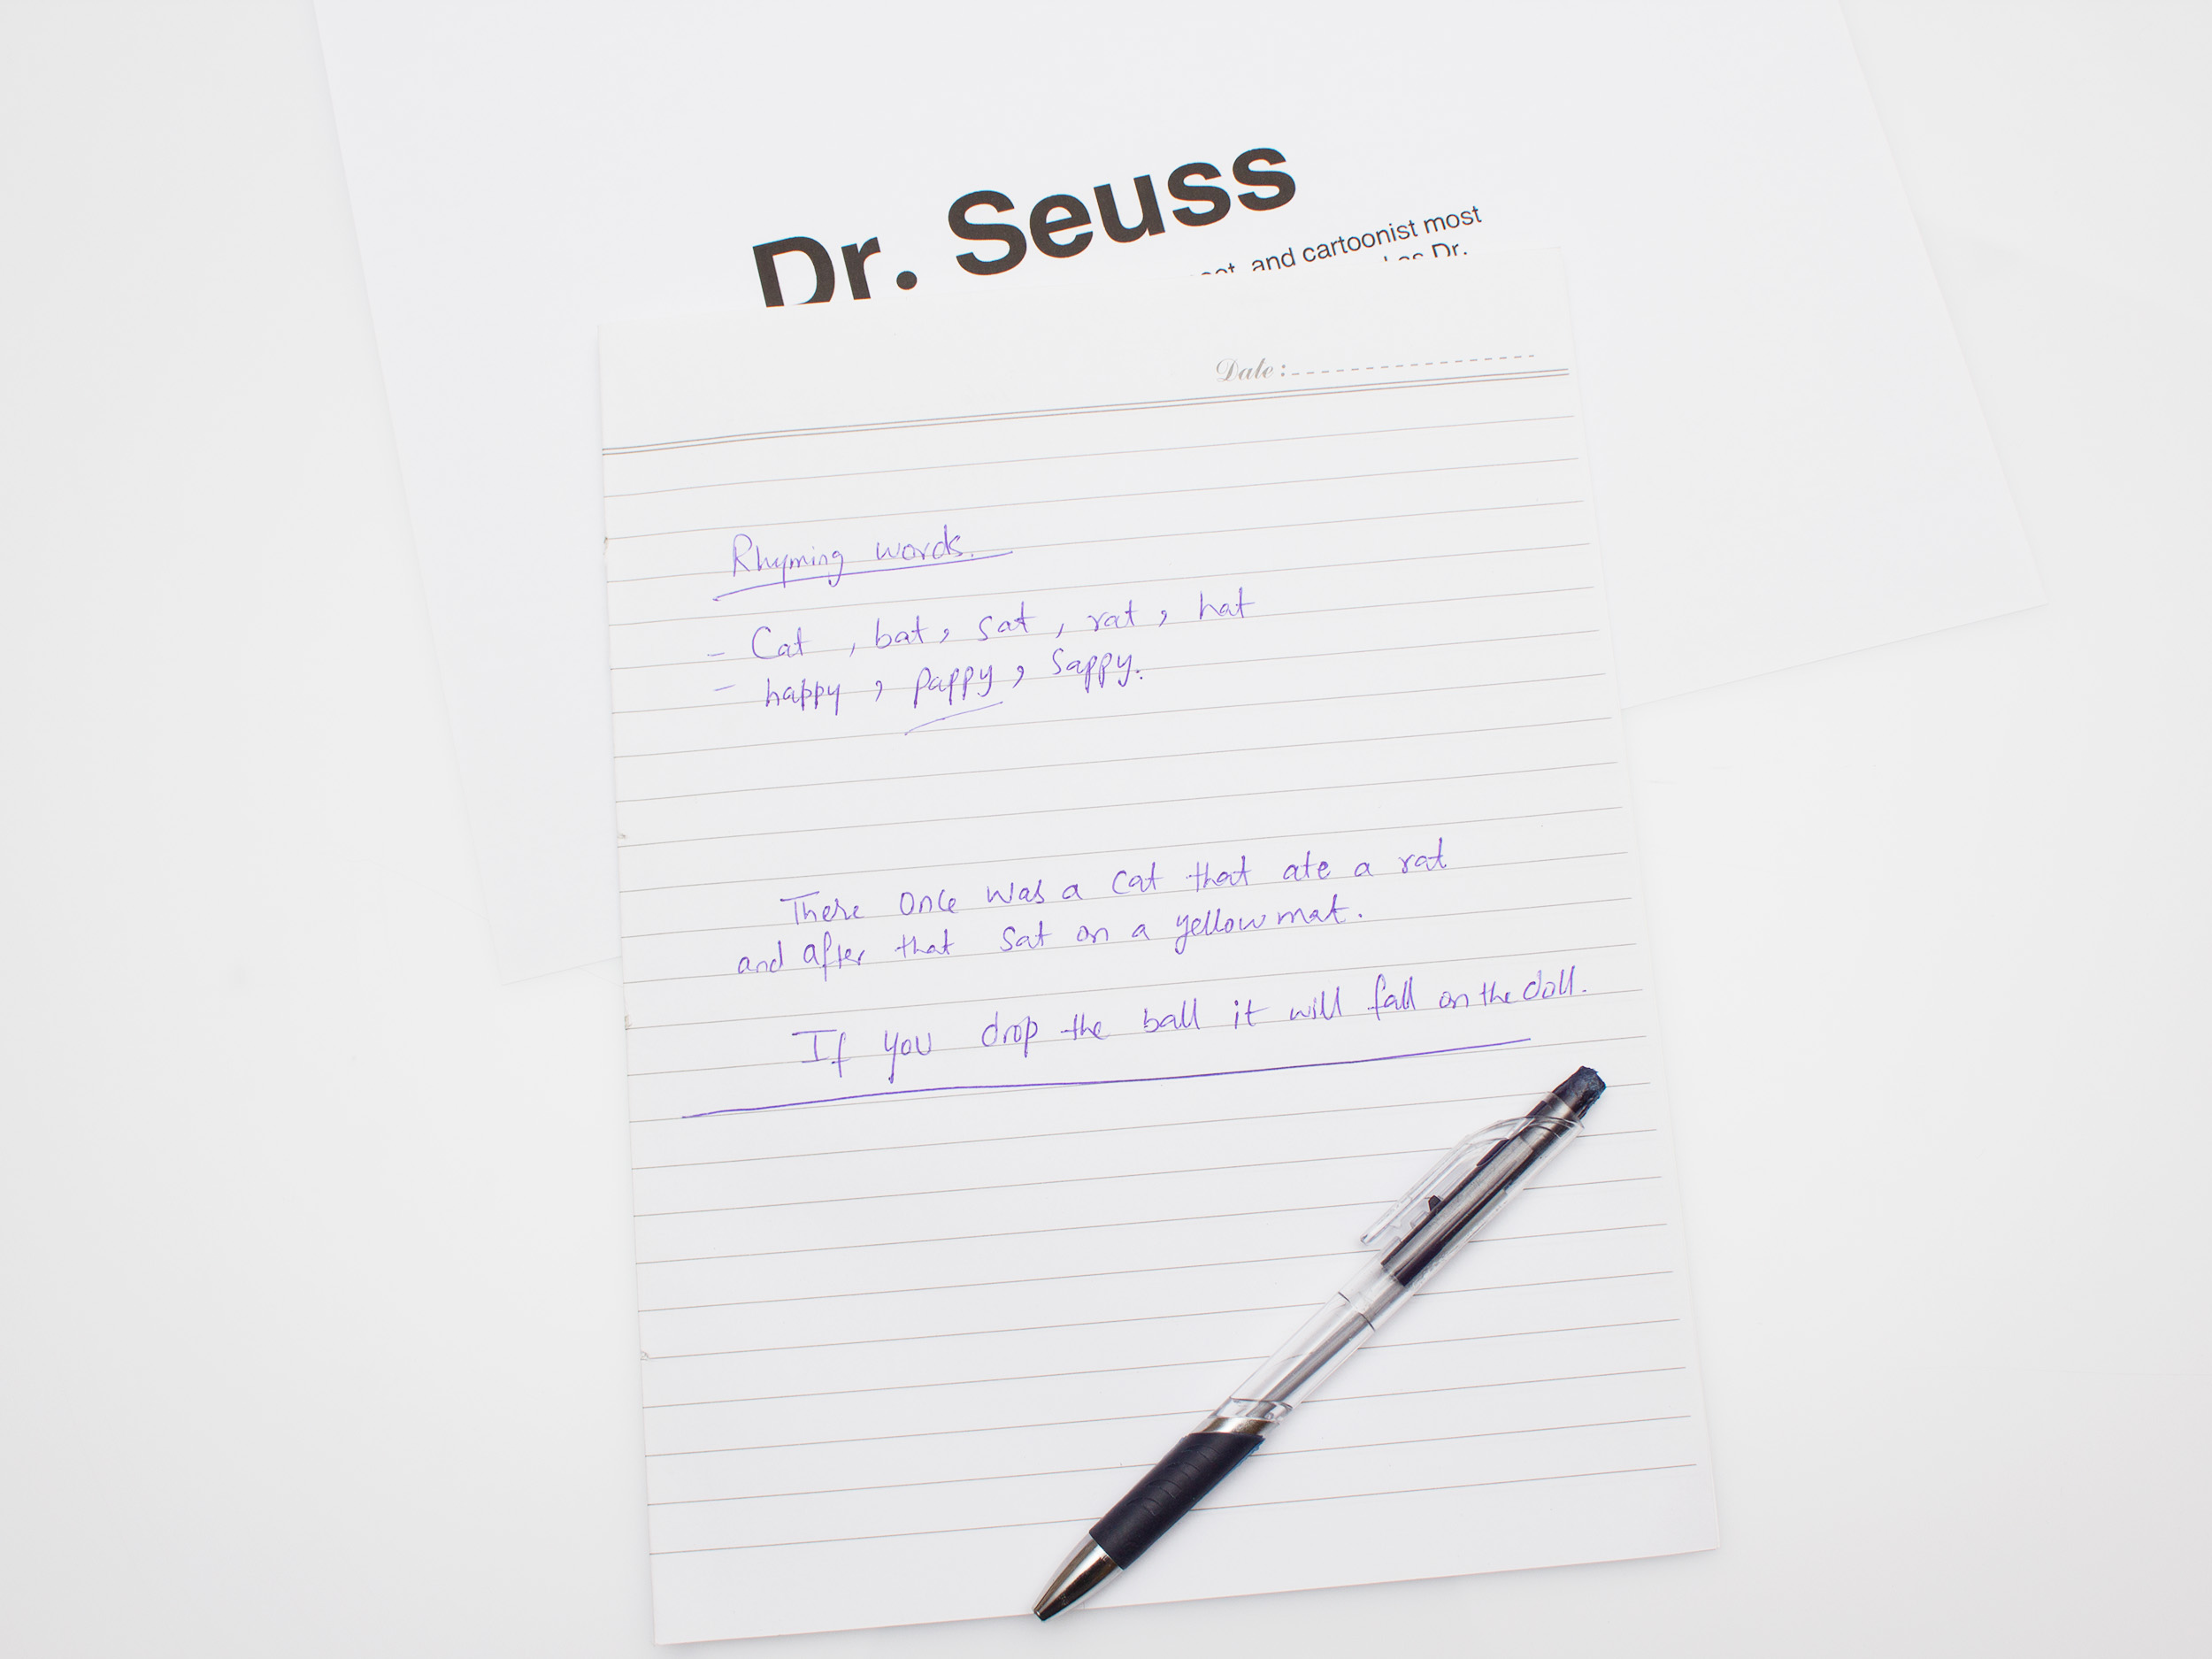 How to Write Like Dr. Seuss: 4 Steps (with Pictures)